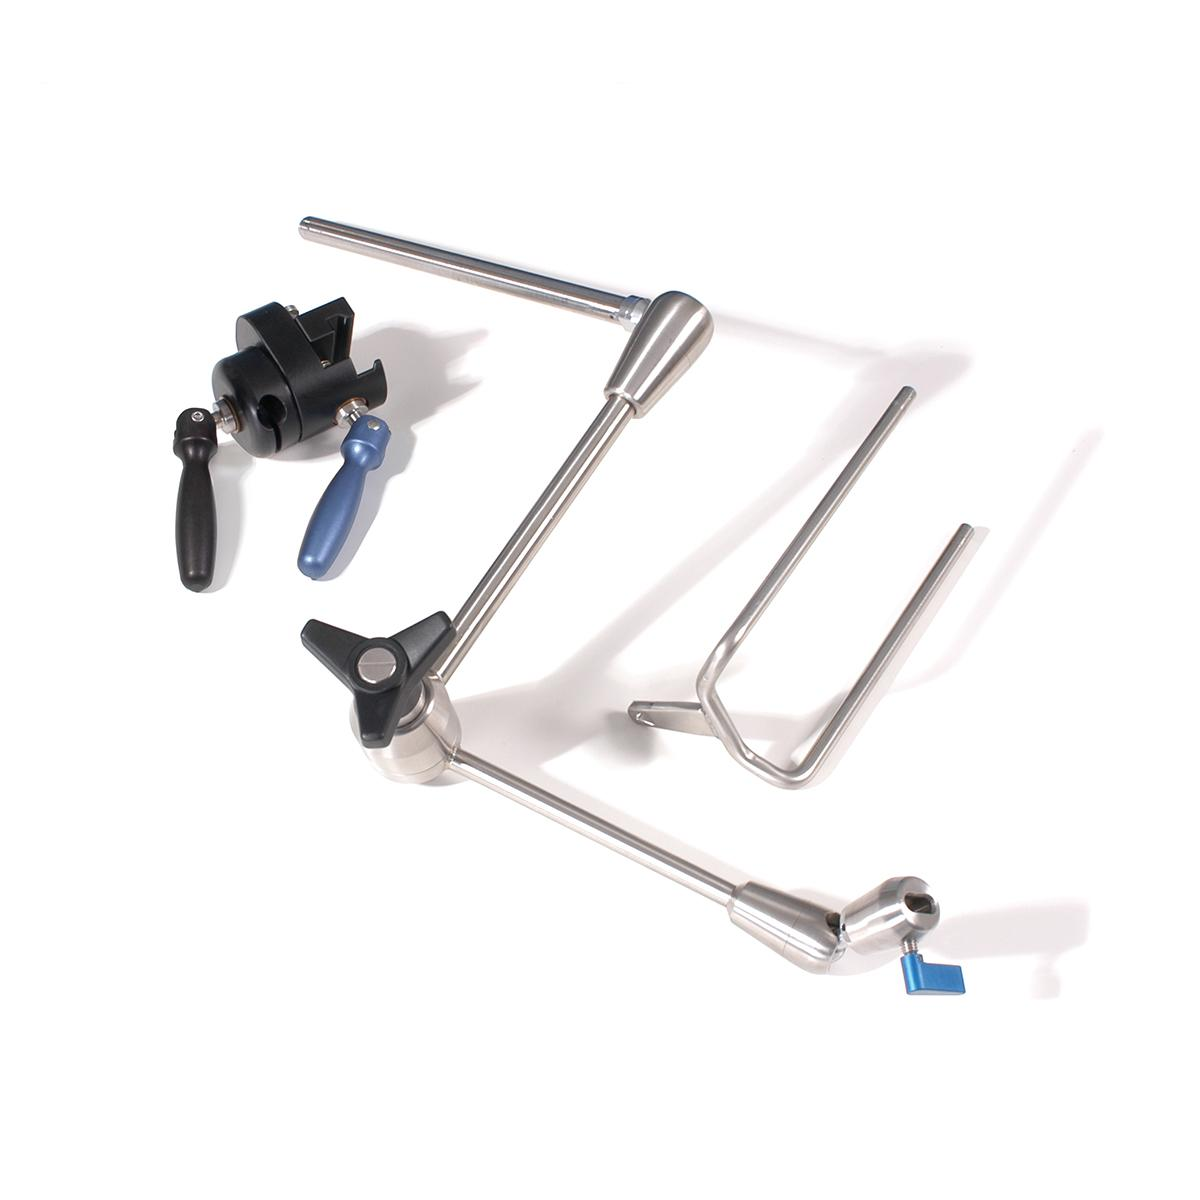 Allen® Arm Positioner, dis-assembled